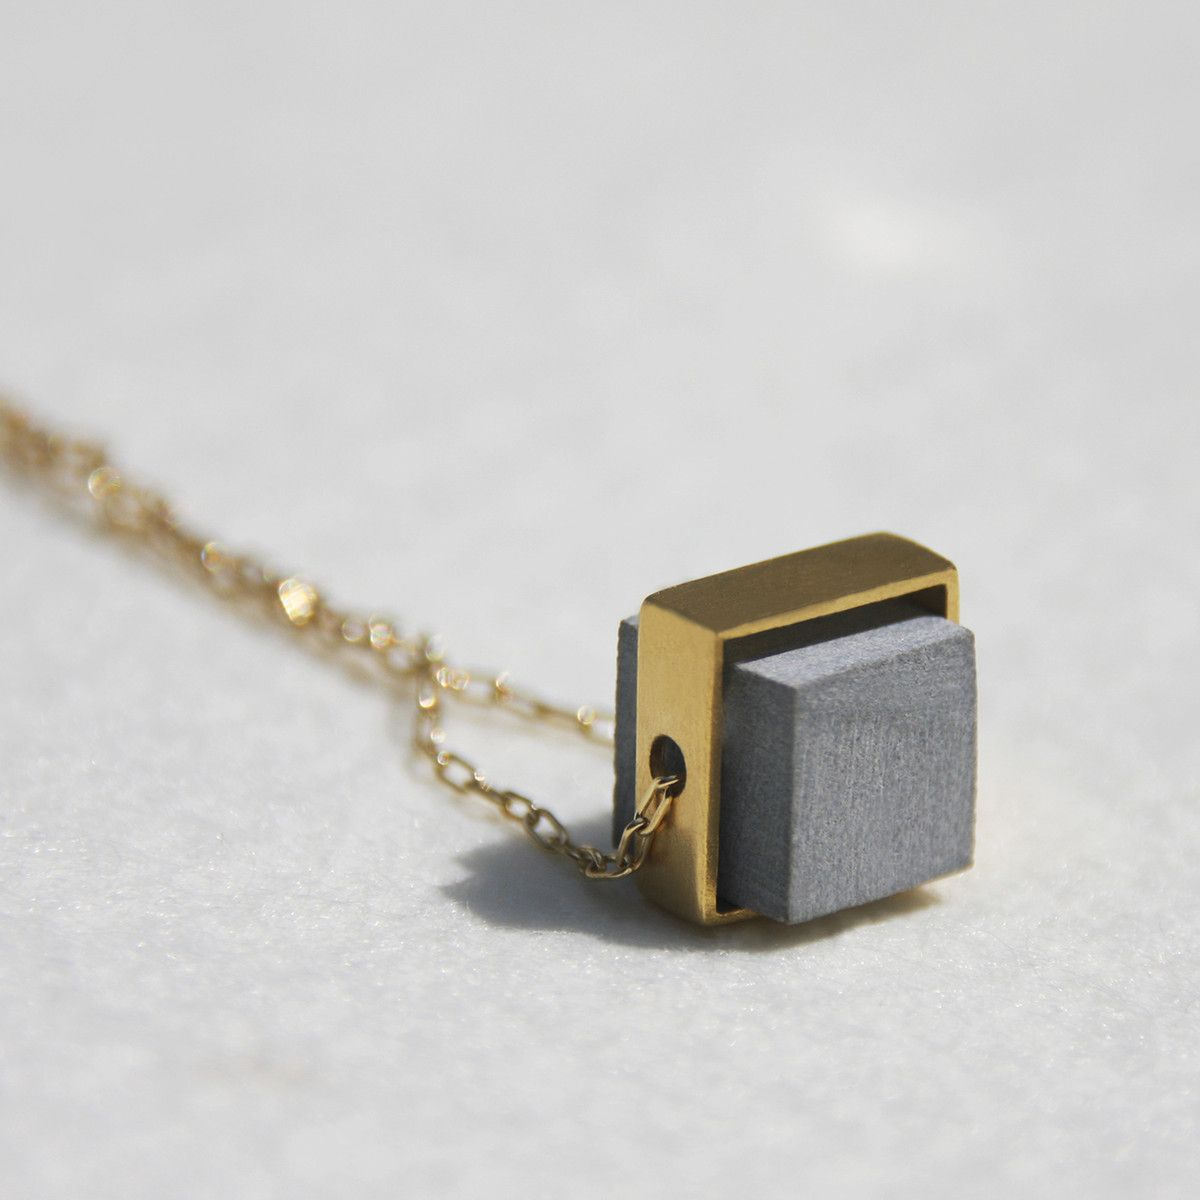 Saturn necklace gold plate gold plated concrete cube brilliant saturn necklace gold plate gold plated concrete cube brilliant aloadofball Images